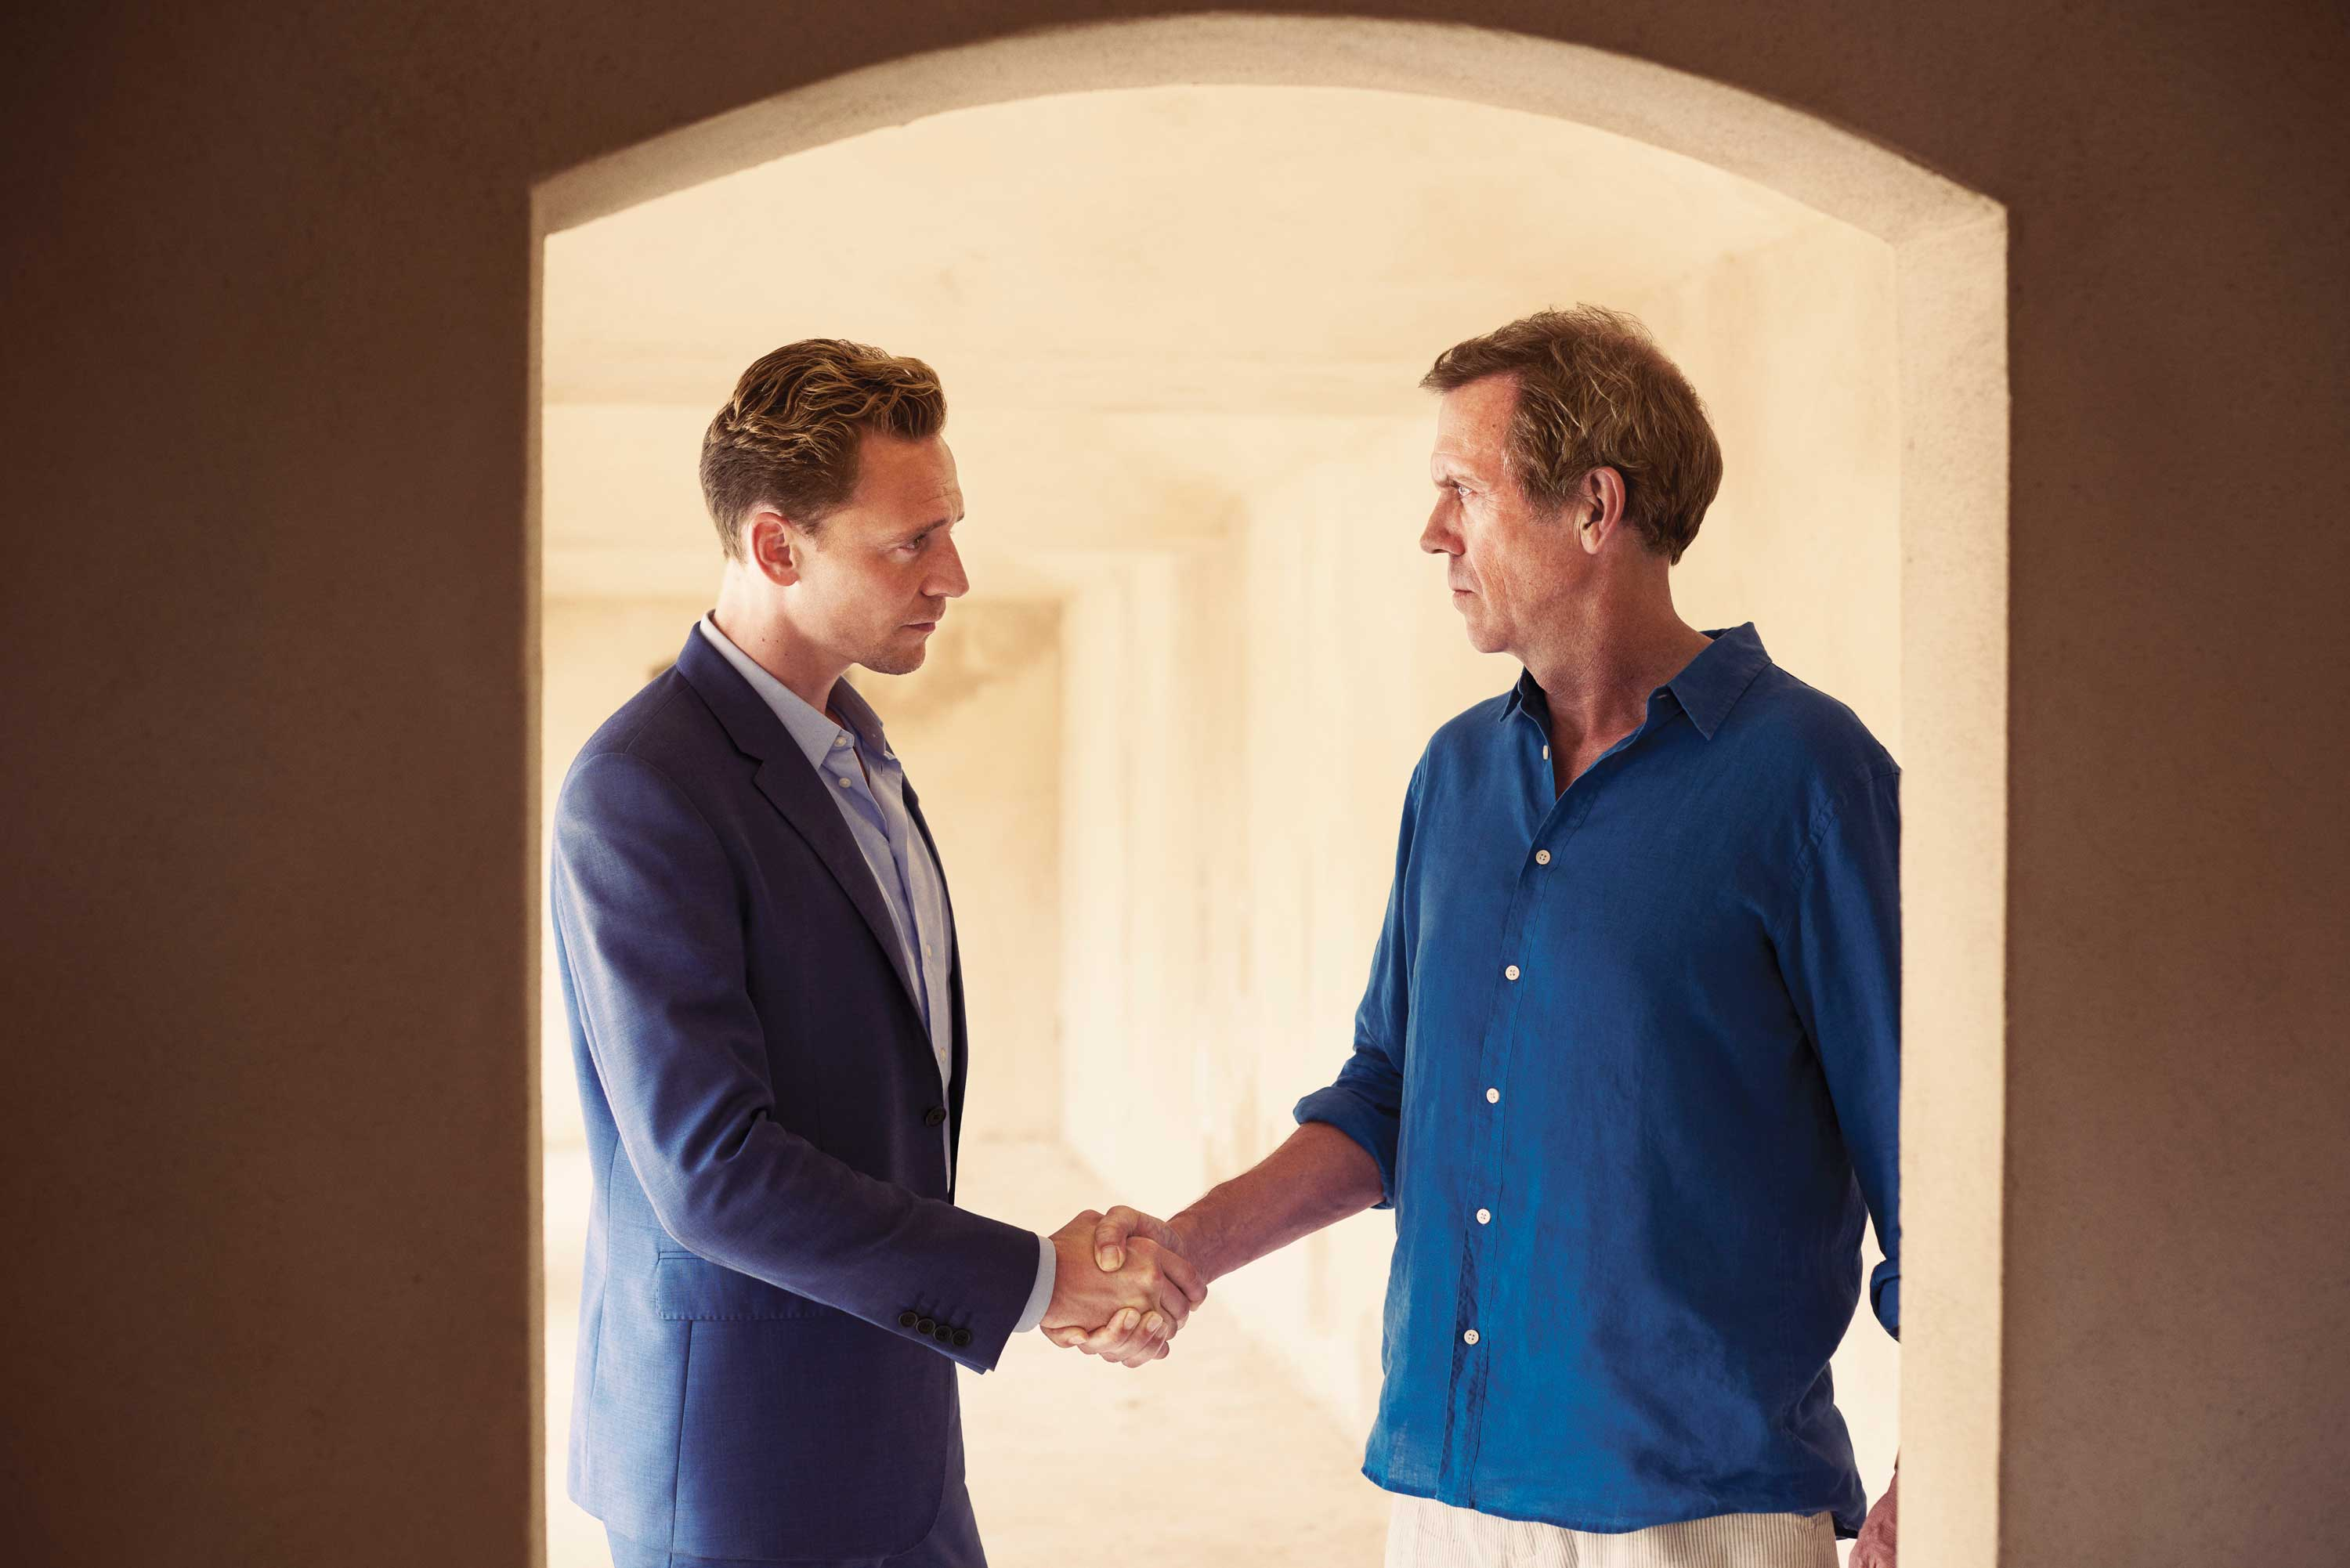 Thrill of secrecy, agony of deceit in The Night Manager